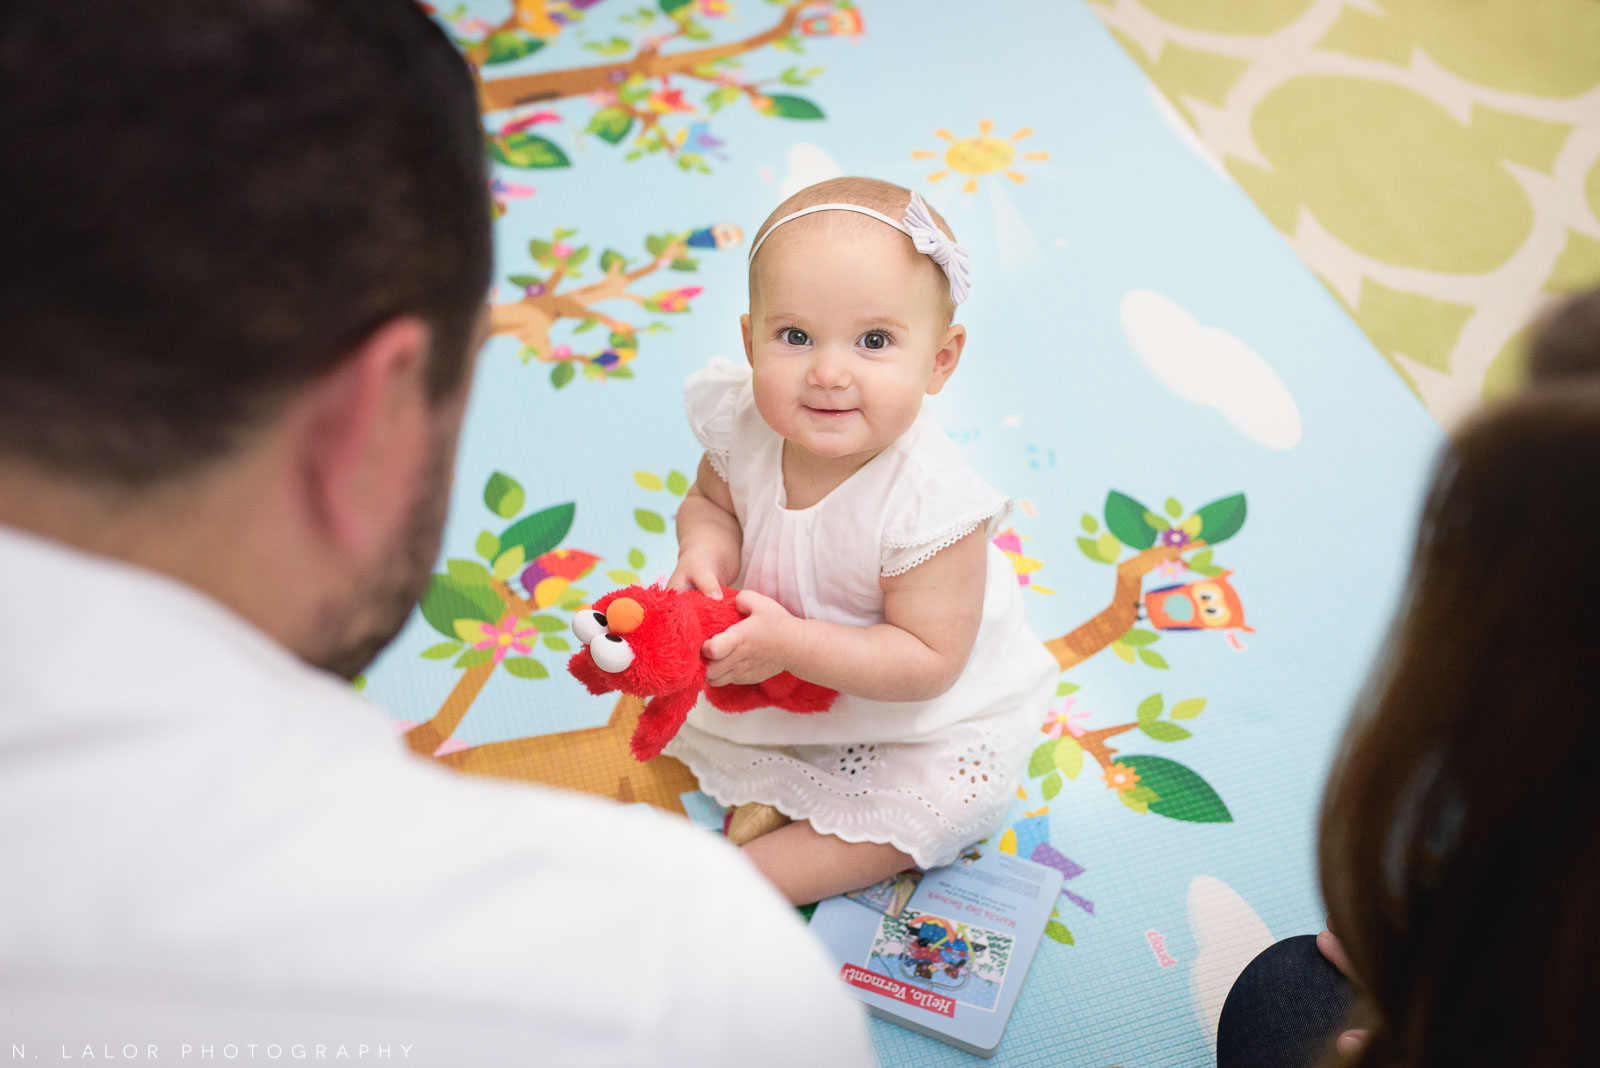 1-year old baby girl in her play room. Lifestyle family photo by N. Lalor Photography.